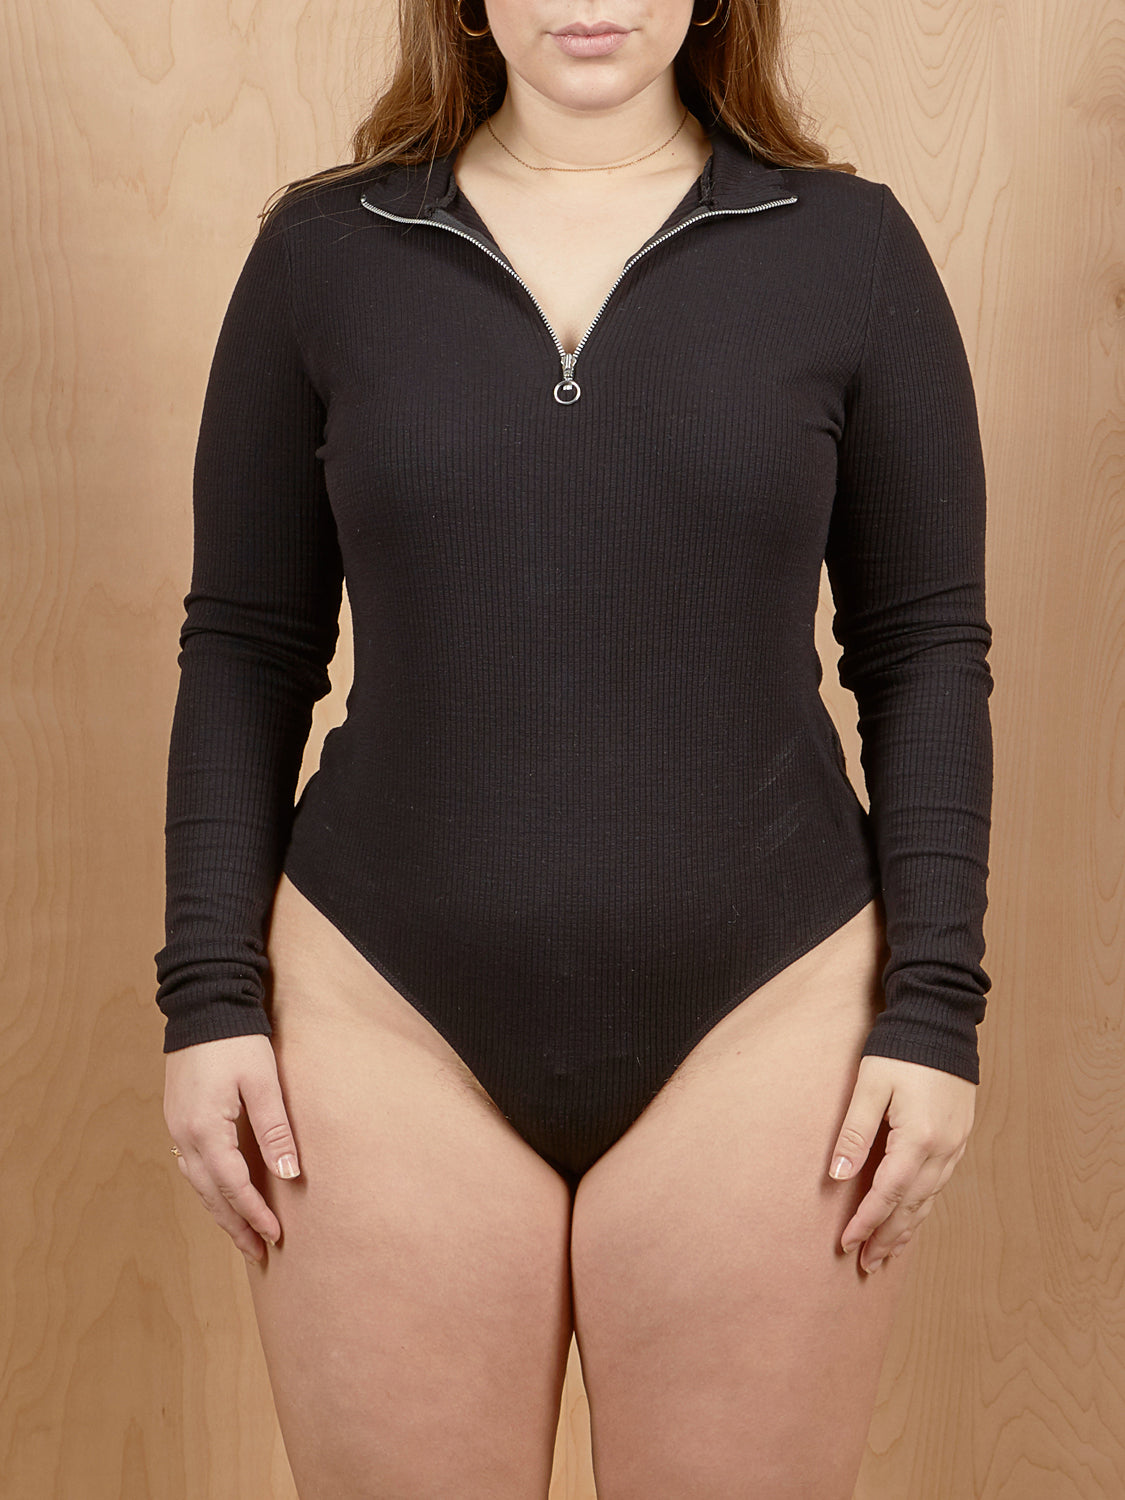 Collusion Ribbed Zip Up Bodysuit